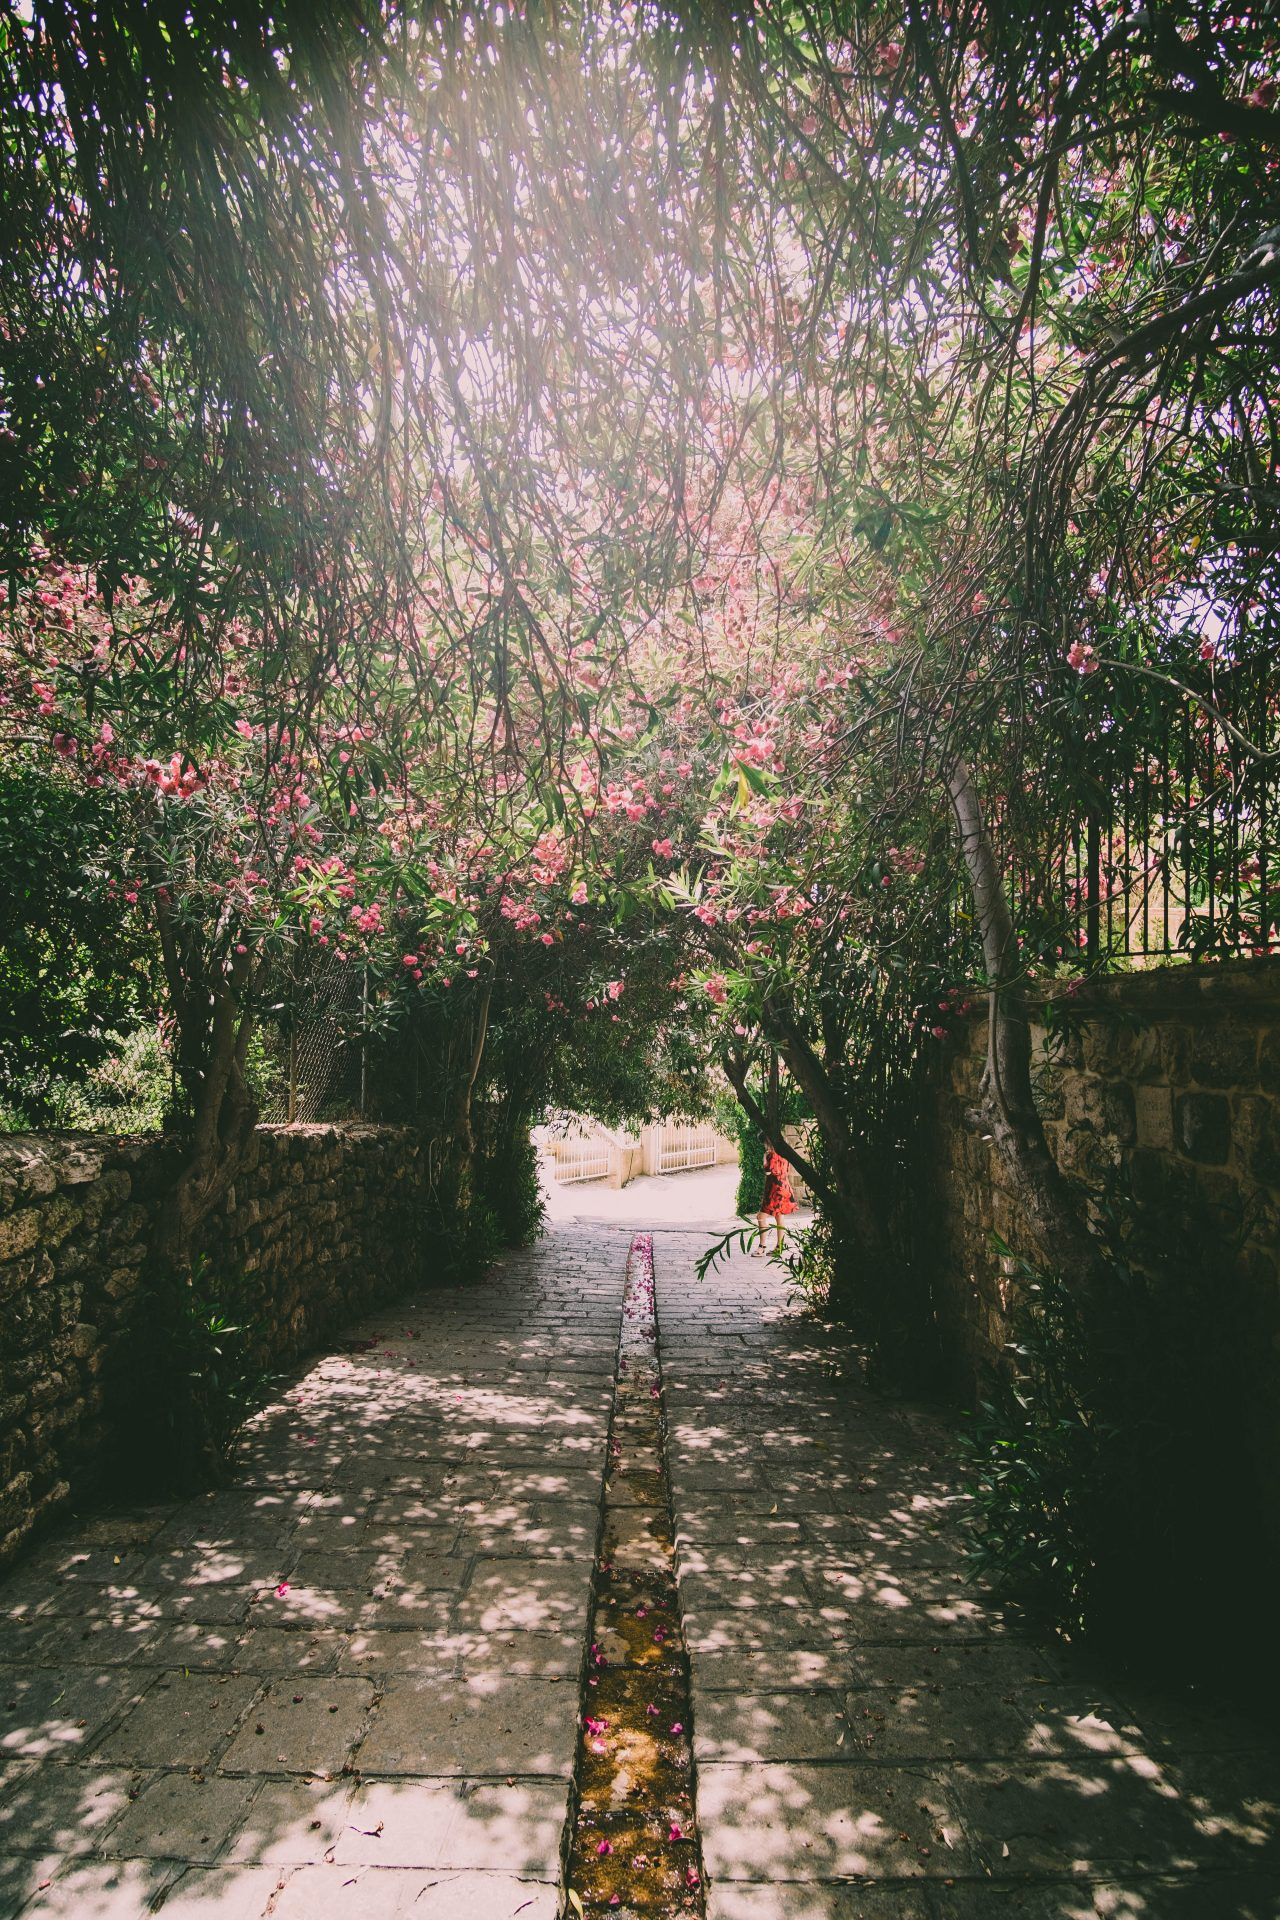 Historical street in Byblos lebanon with flowers photo by Jo Kassis